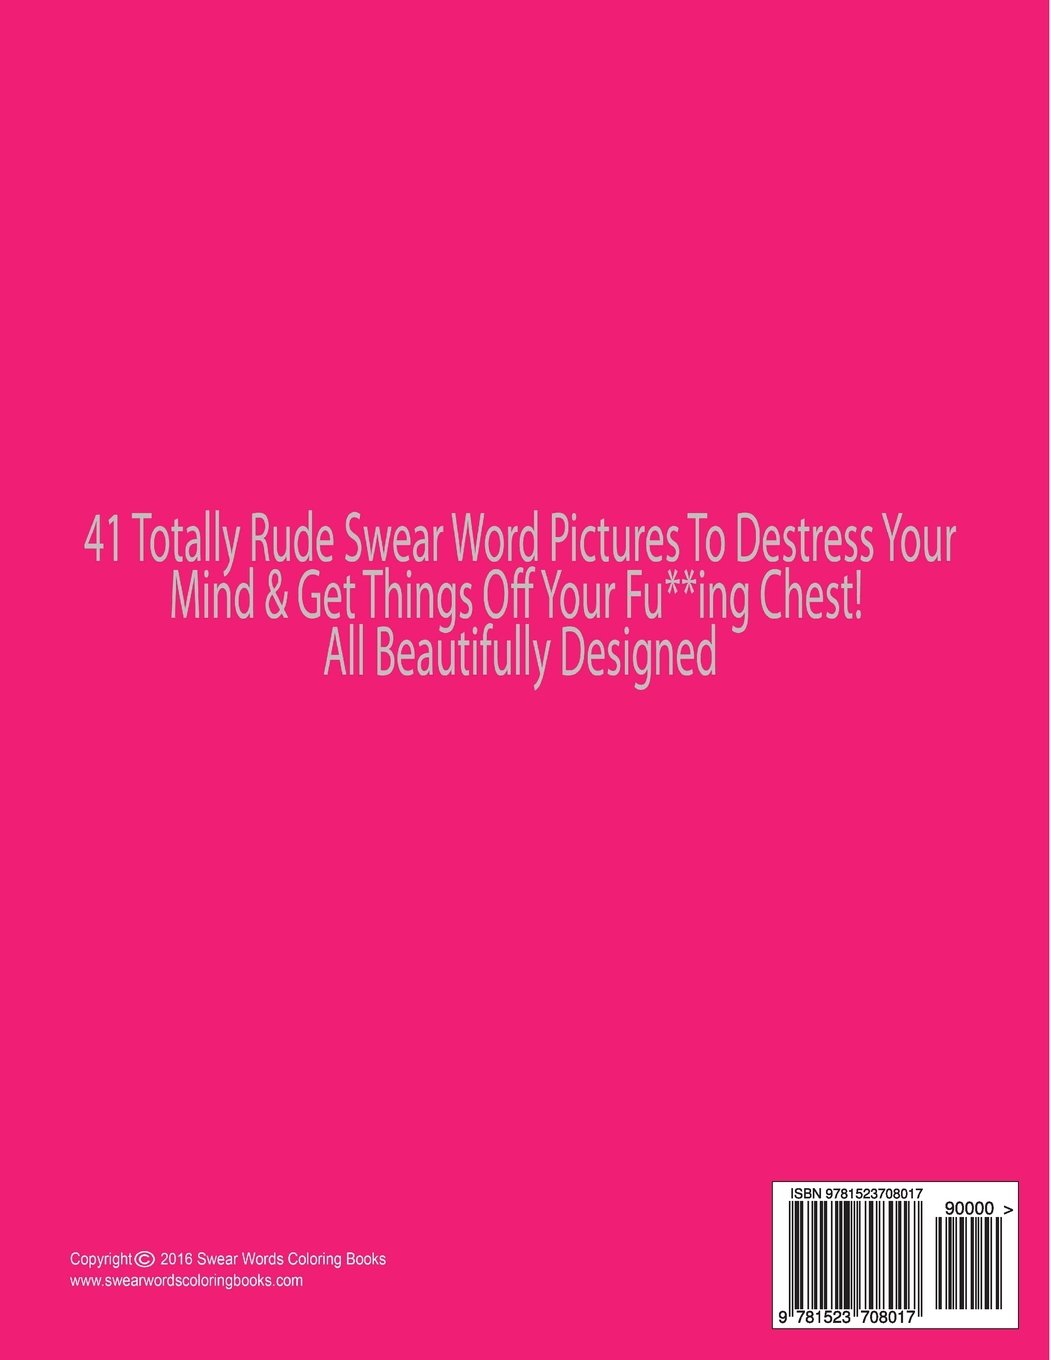 Swear word coloring book volume 1 - Amazon Com Swear Word Coloring Book Adults Coloring Book With Some Very Sweary Words 41 Stress Relieving Curse Word Designs To Calm You The F K Down